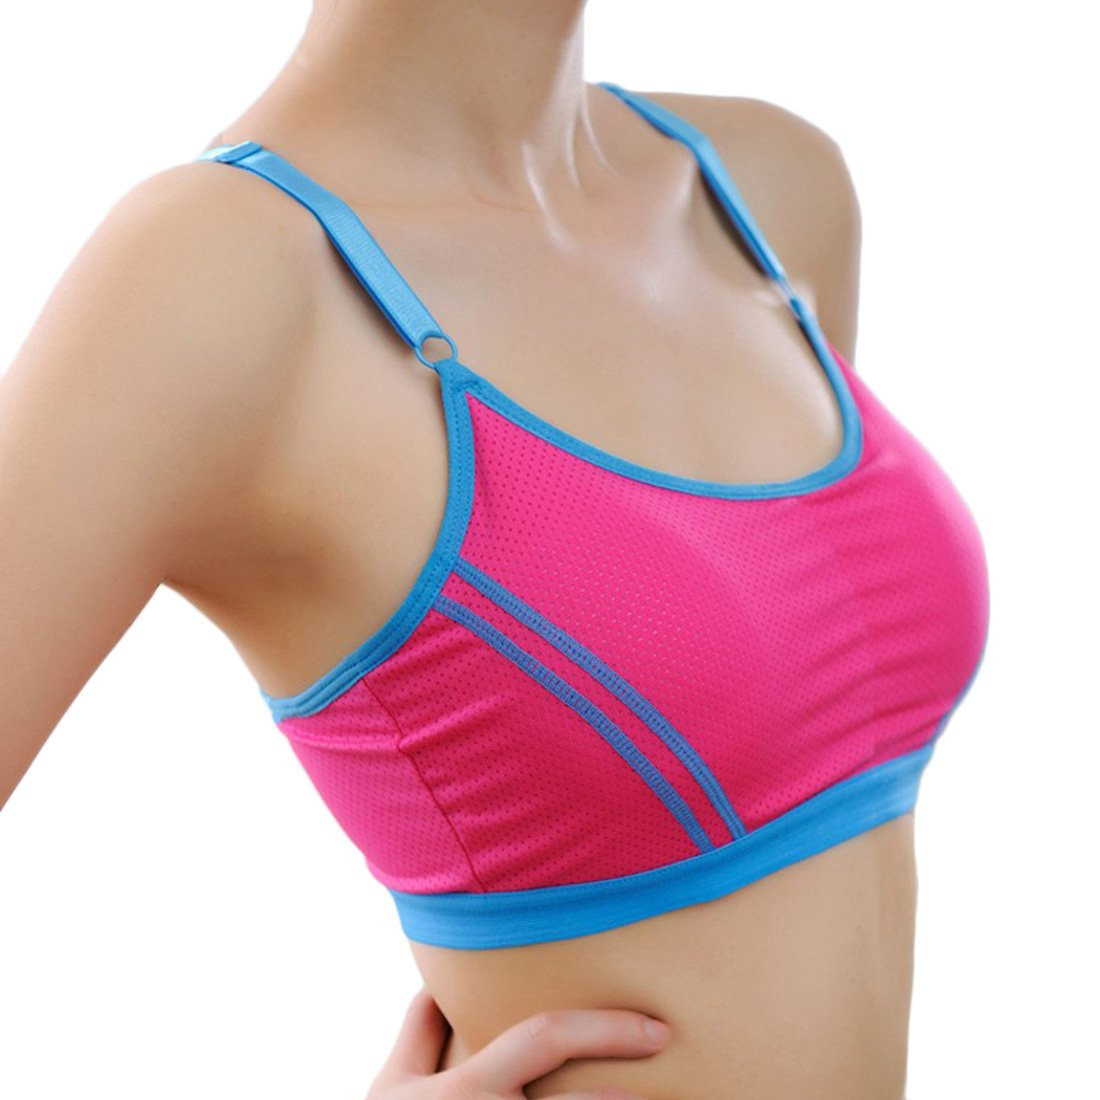 changeshopping Women Lady Sports Yoga Athletic Solid Wrap Chest Strap Vest Tops Bra Changeshopping 2 Changeshopping510